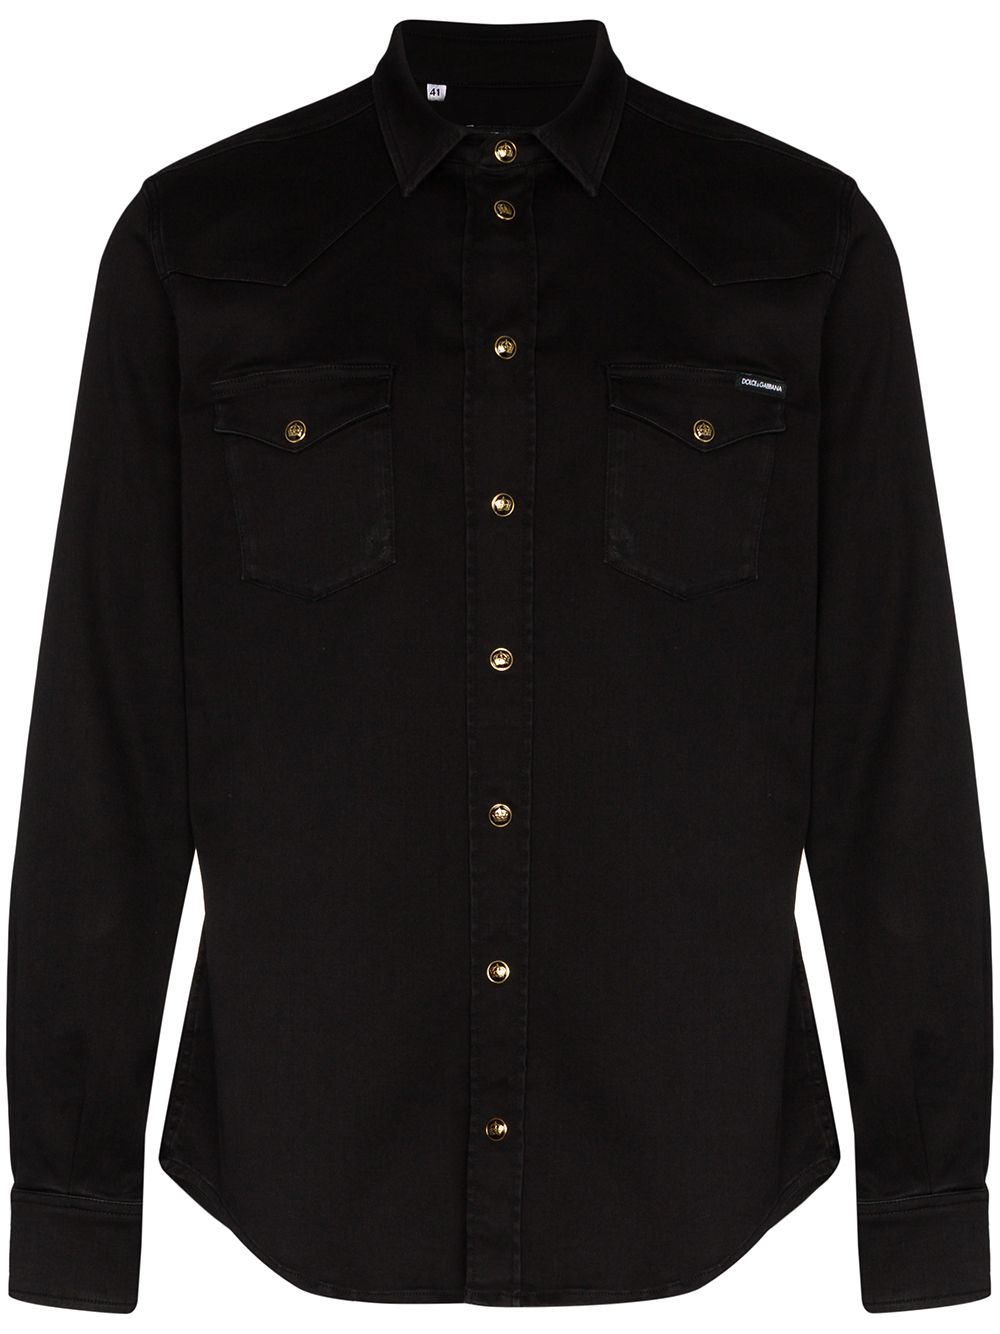 Shirt With Gold Buttons